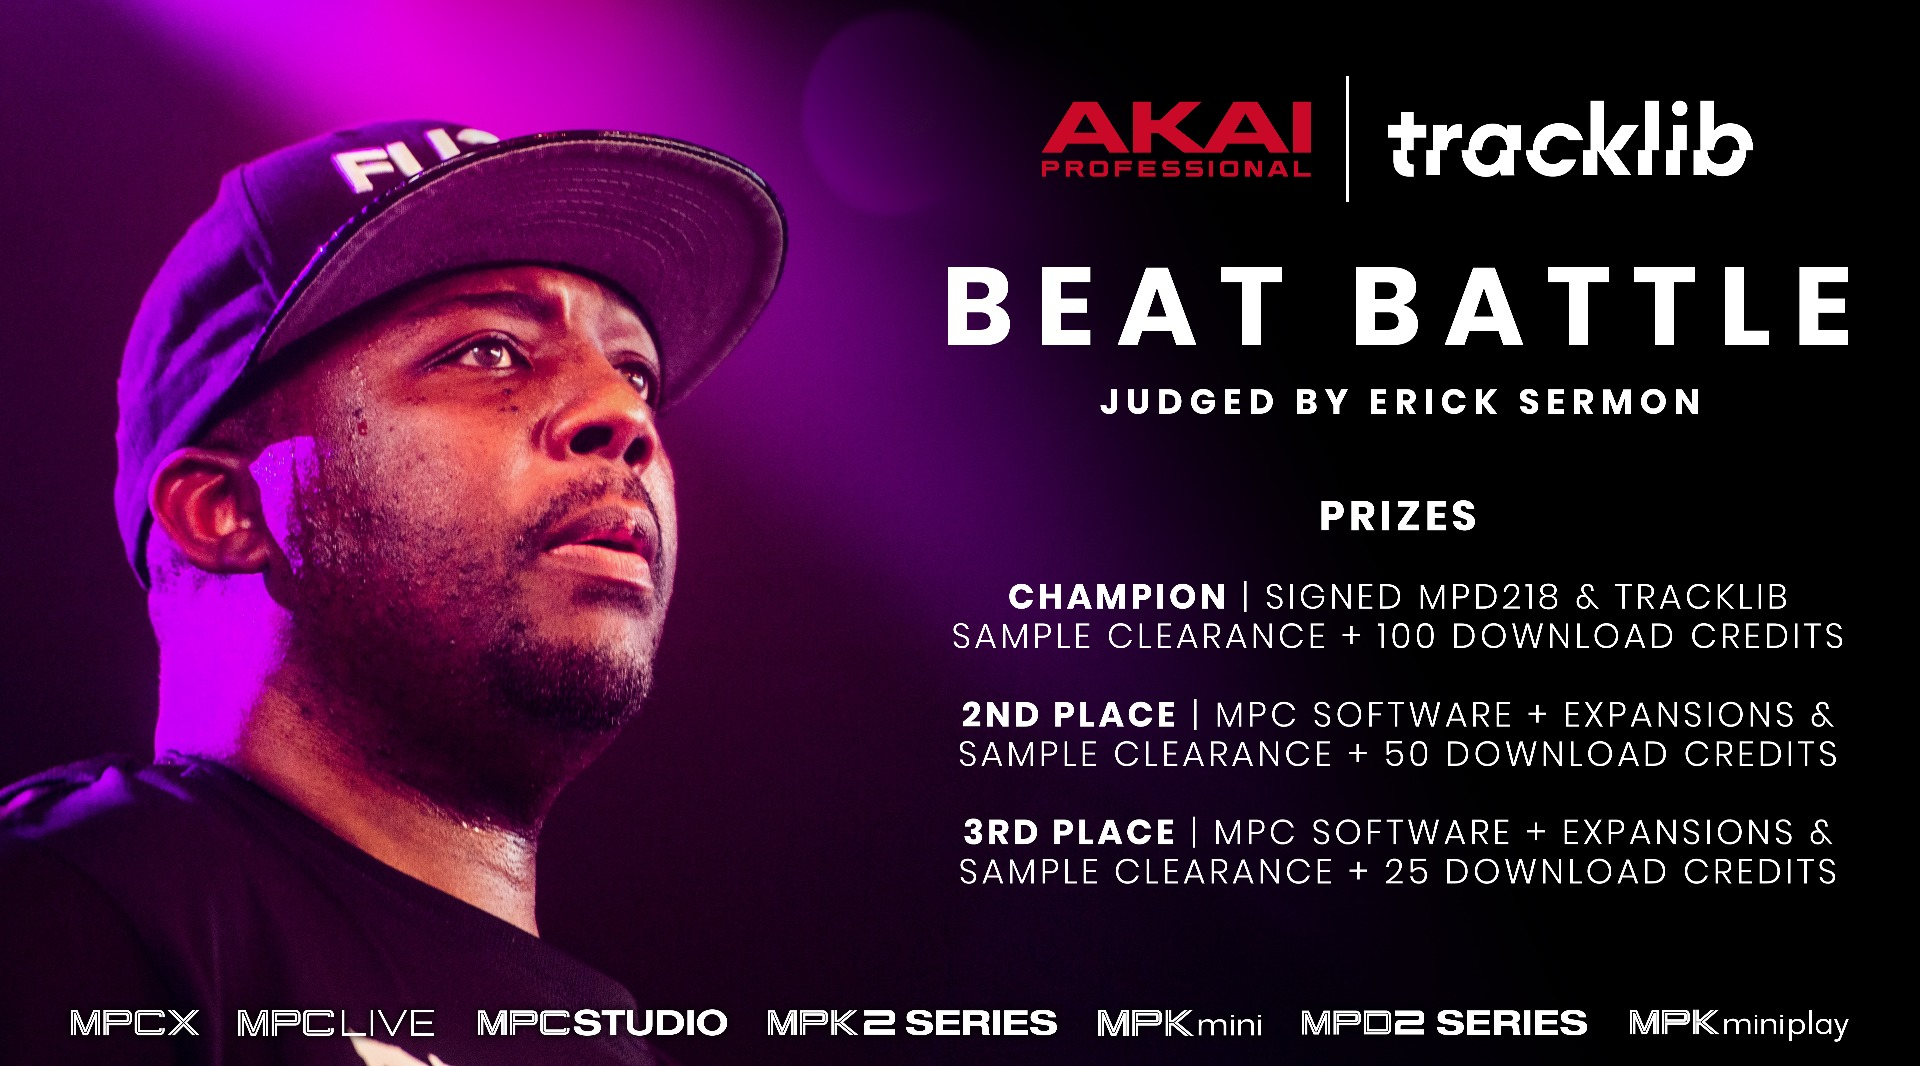 Akai Professional & Tracklib Join Forces with an Exclusive Beat